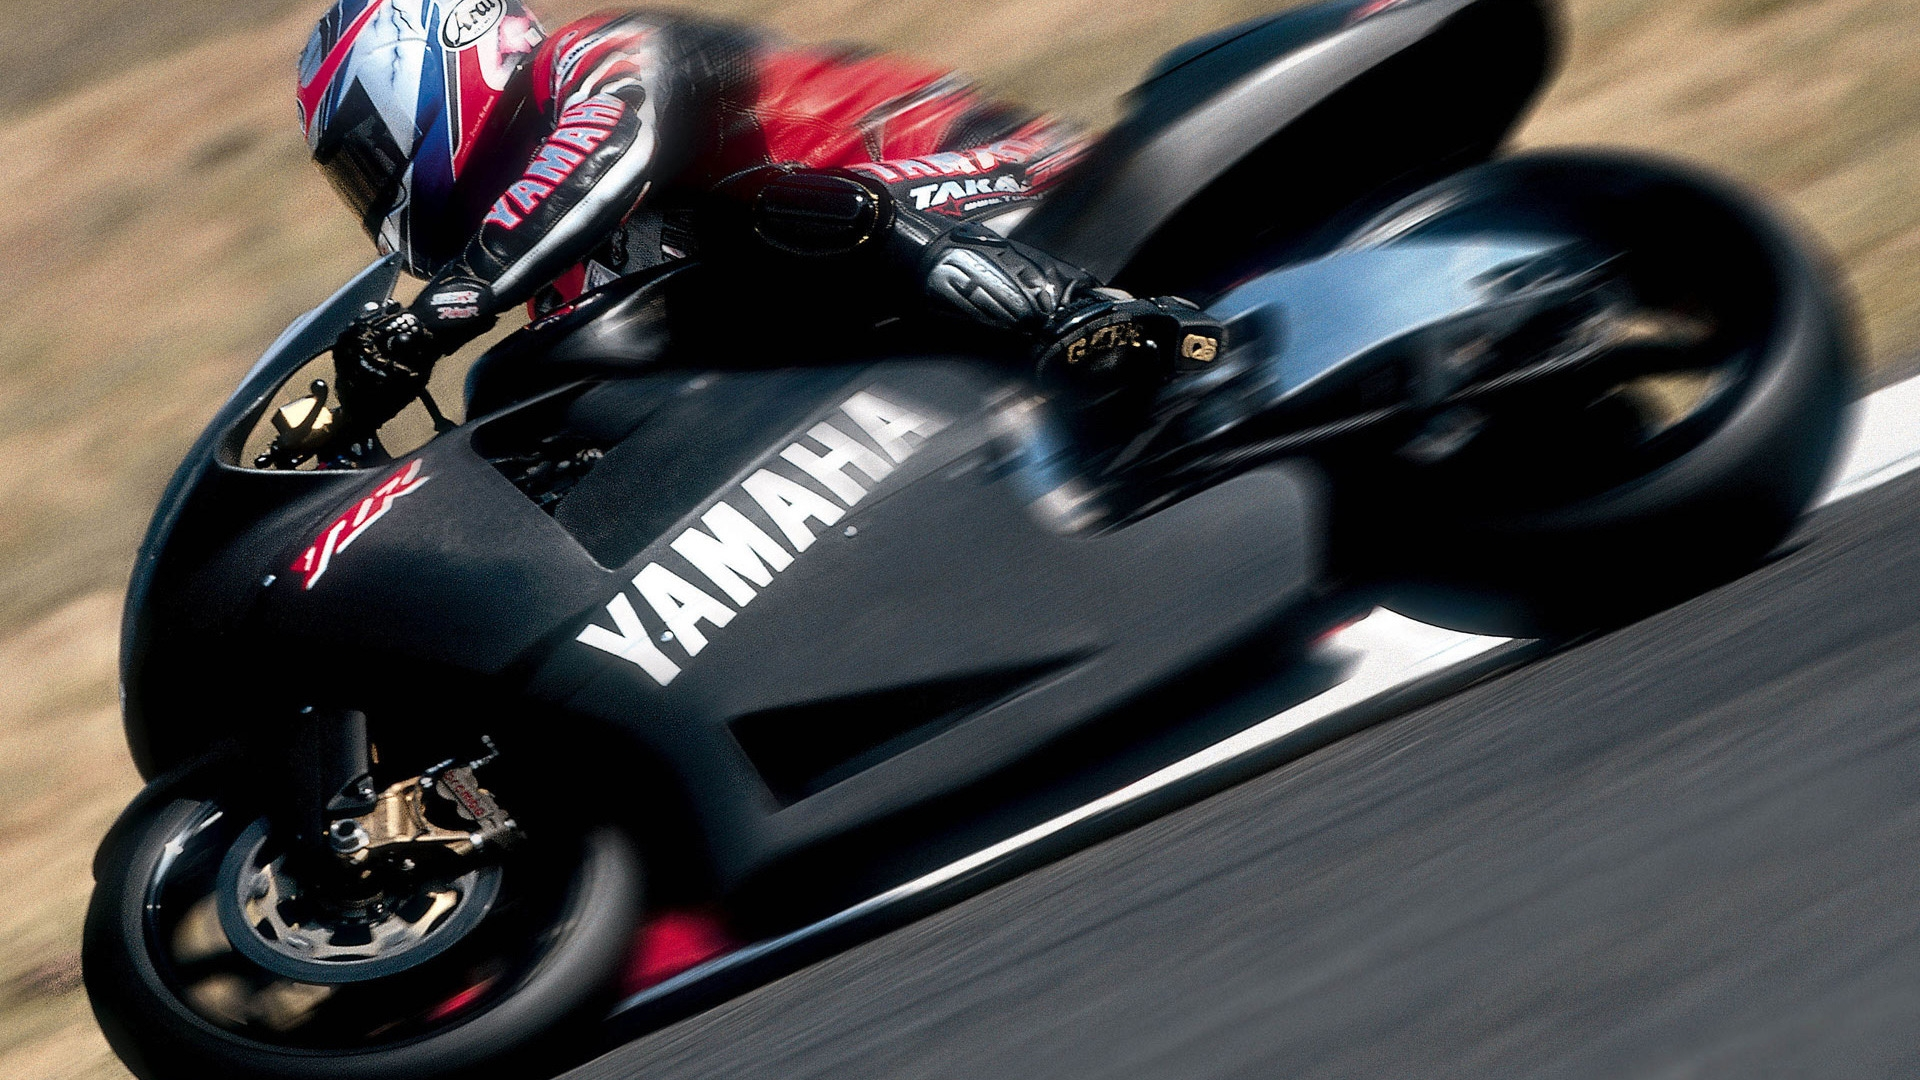 Yamaha YZR M1 Concept for 1920 x 1080 HDTV 1080p resolution